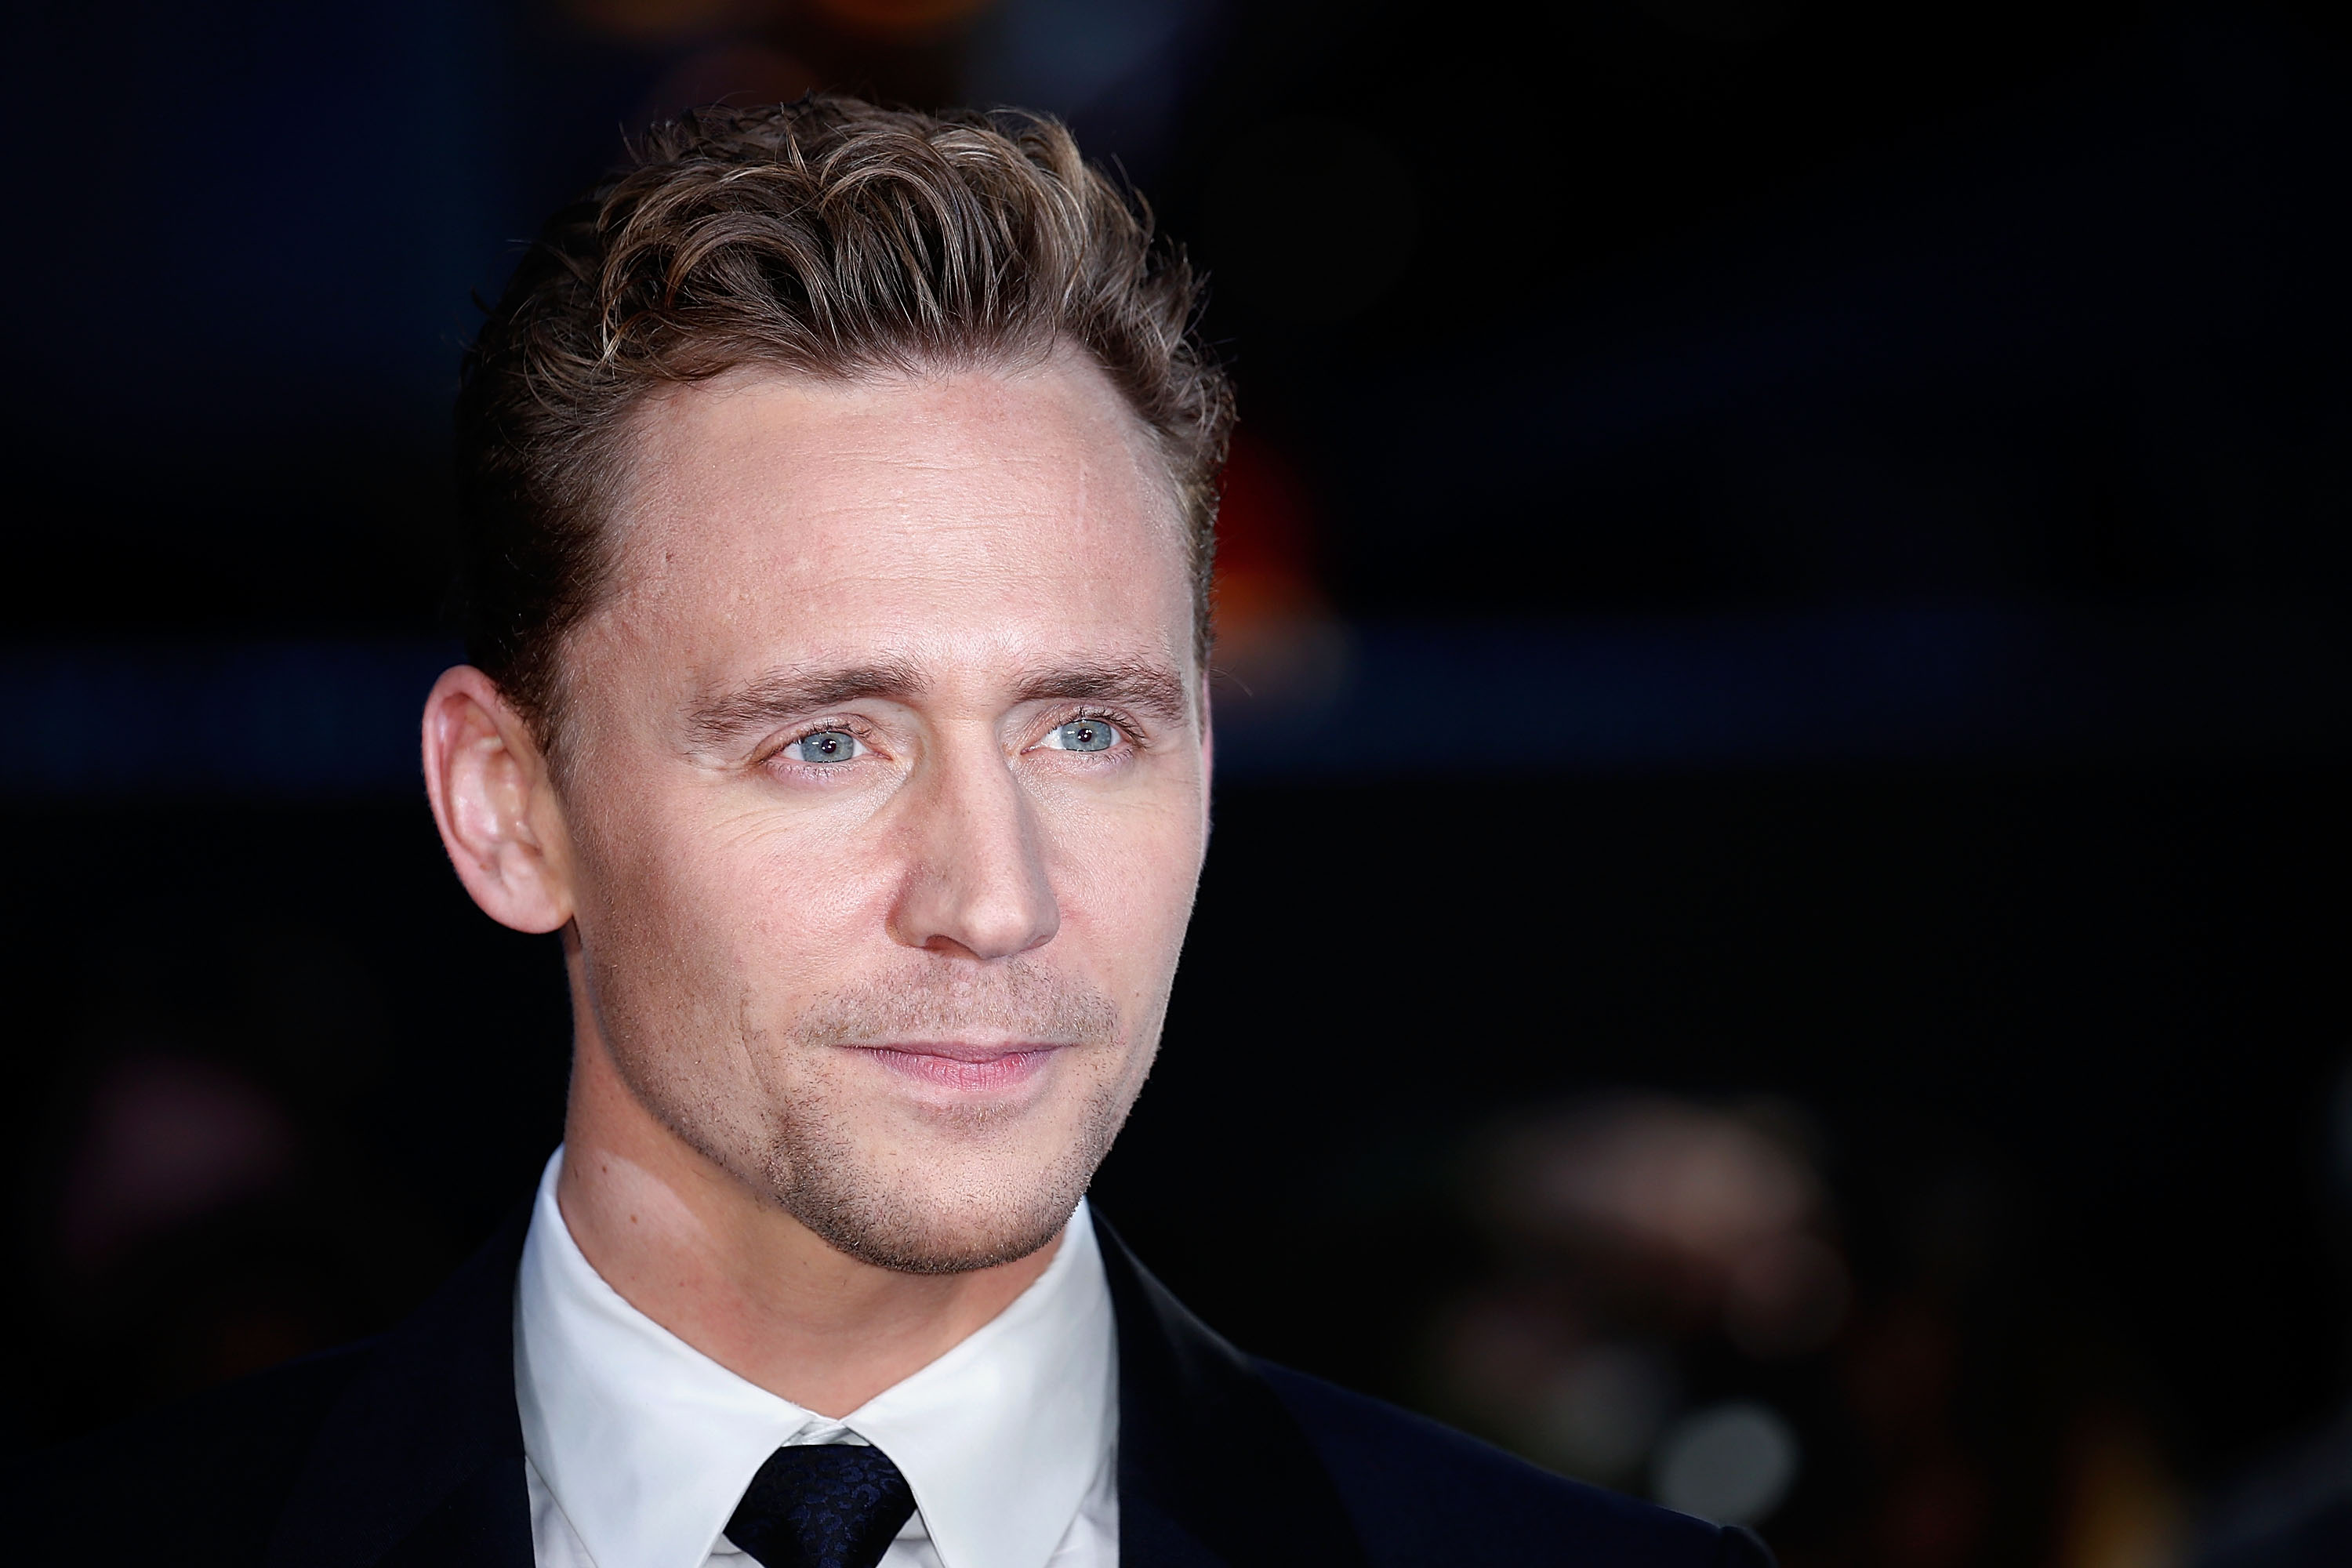 Tom Hiddleston attends the High-Rise Screening, during the BFI London Film Festival, at Odeon Leicester Square on October 9, 2015 in London, England.  (Photo by John Phillips/Getty Images for BFI)